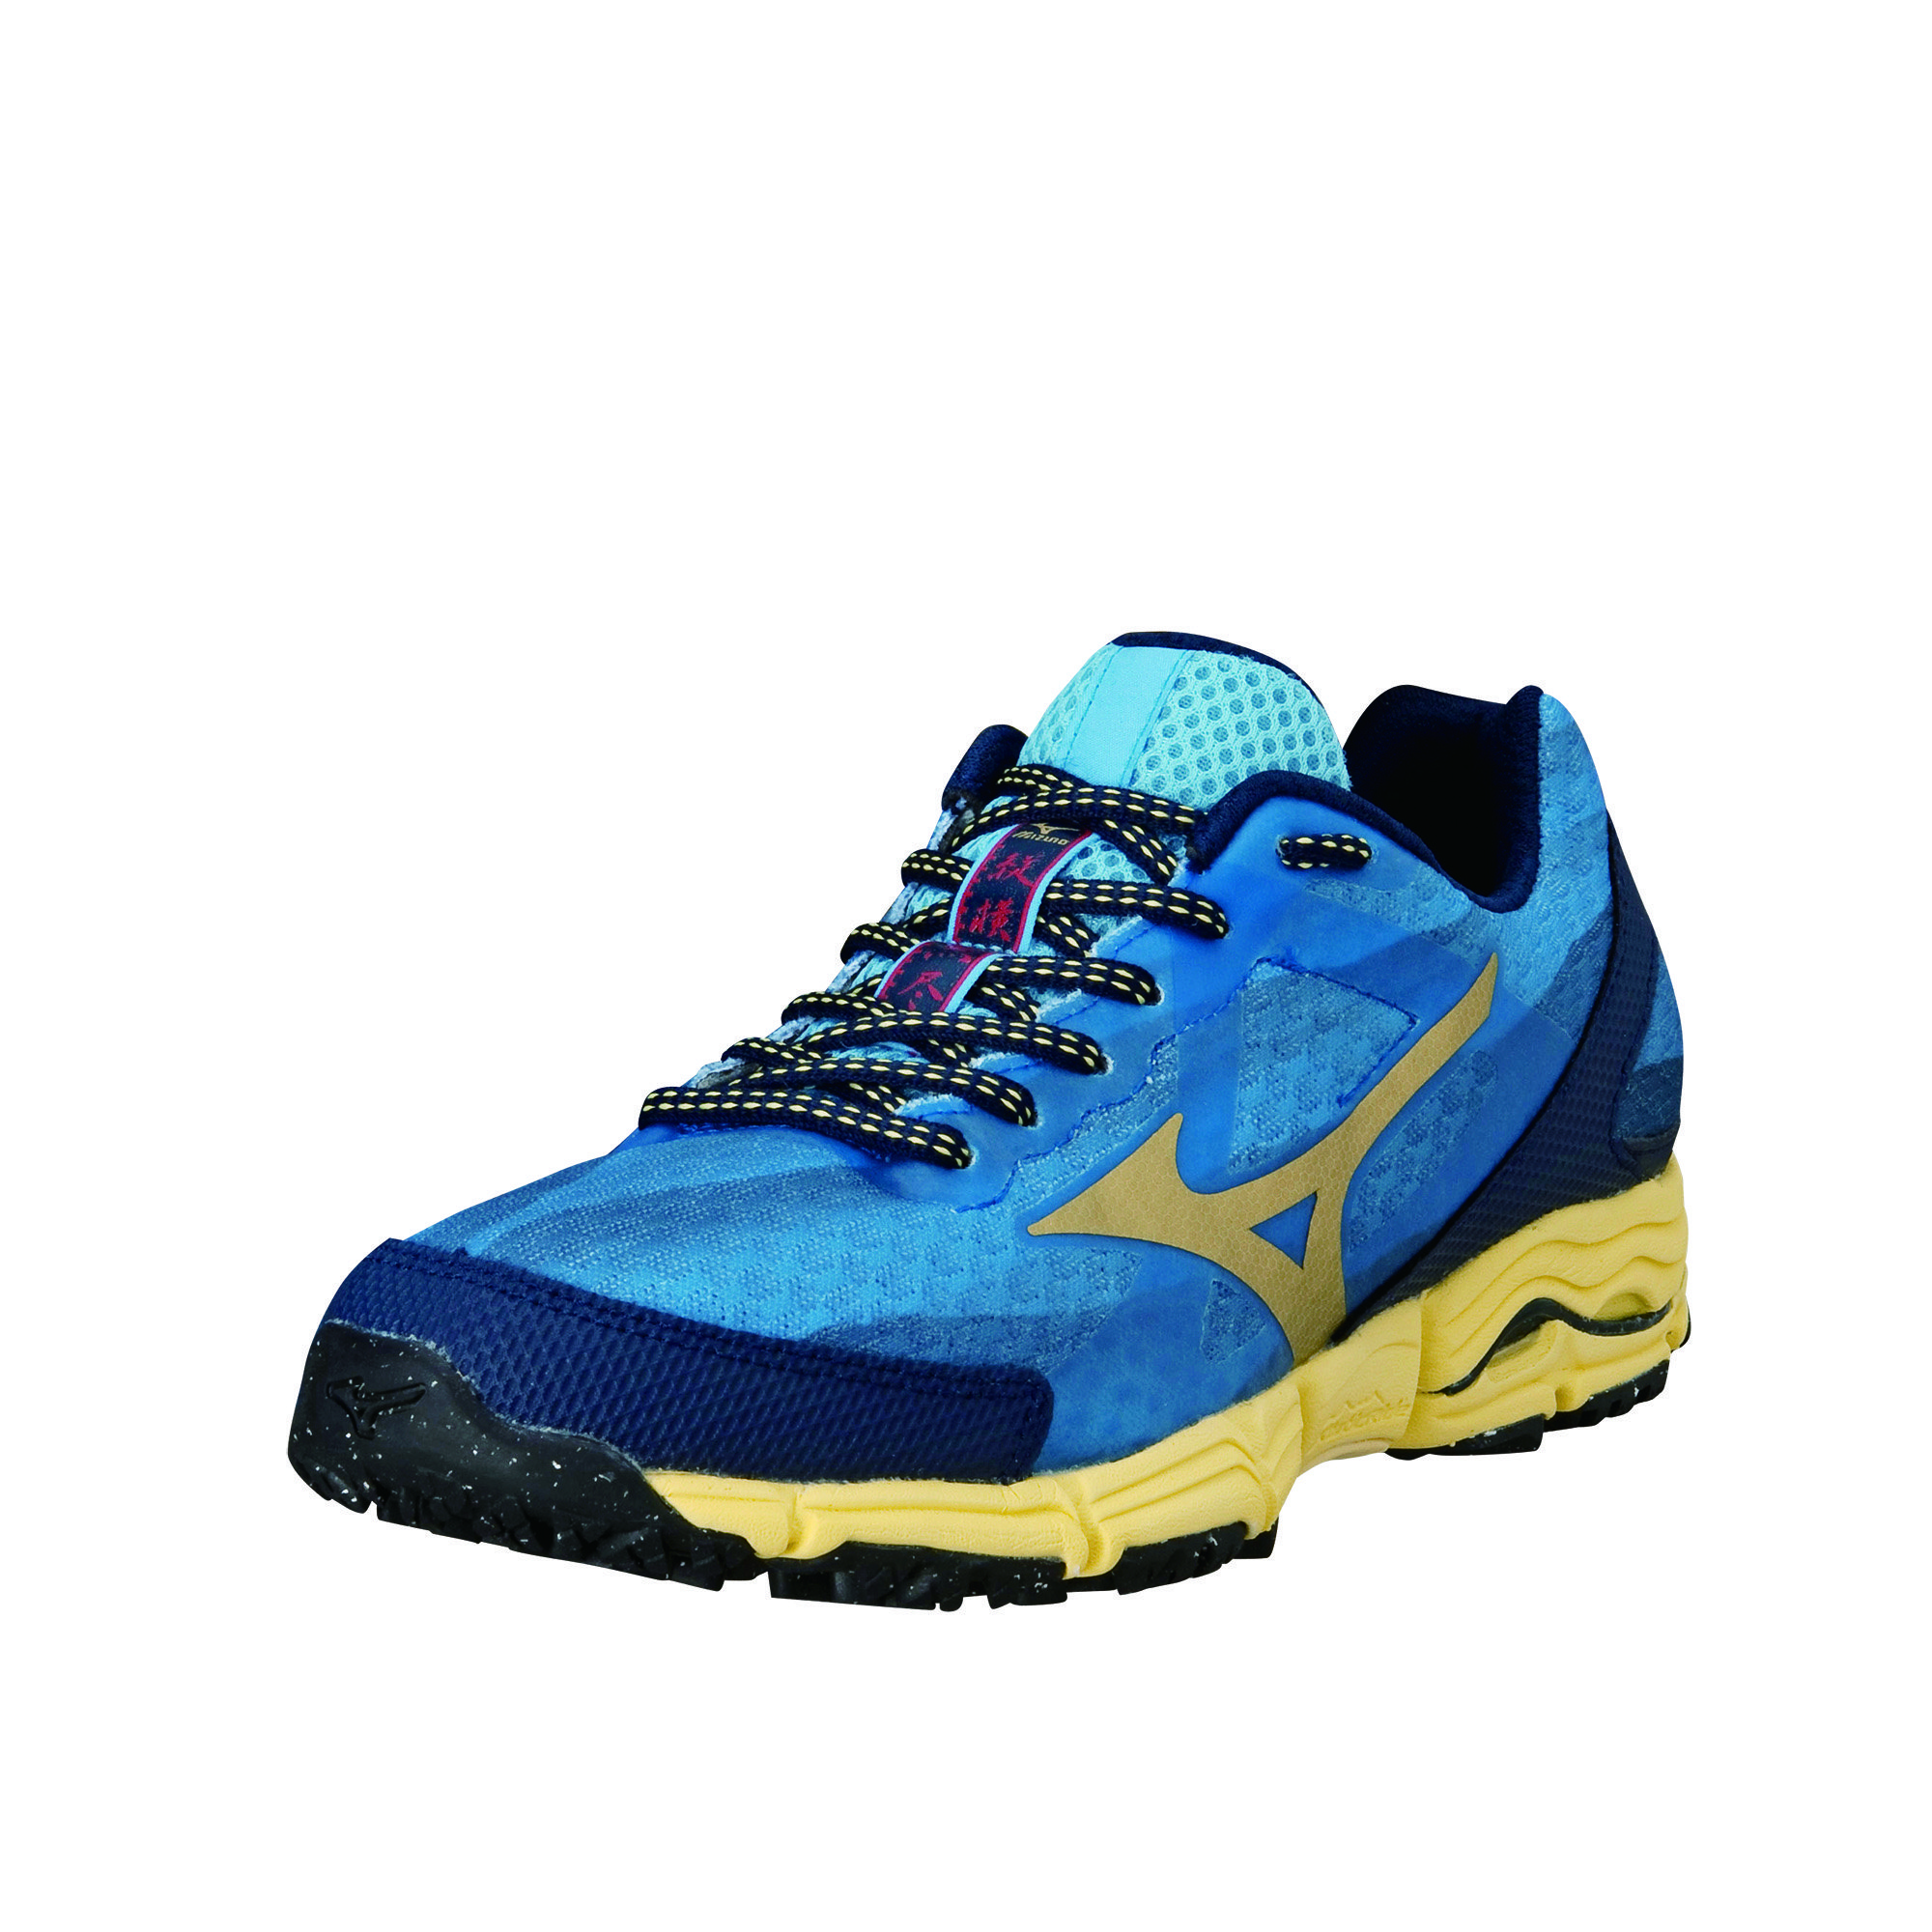 Mizuno Lady Wave Mujin in Blau Gelb